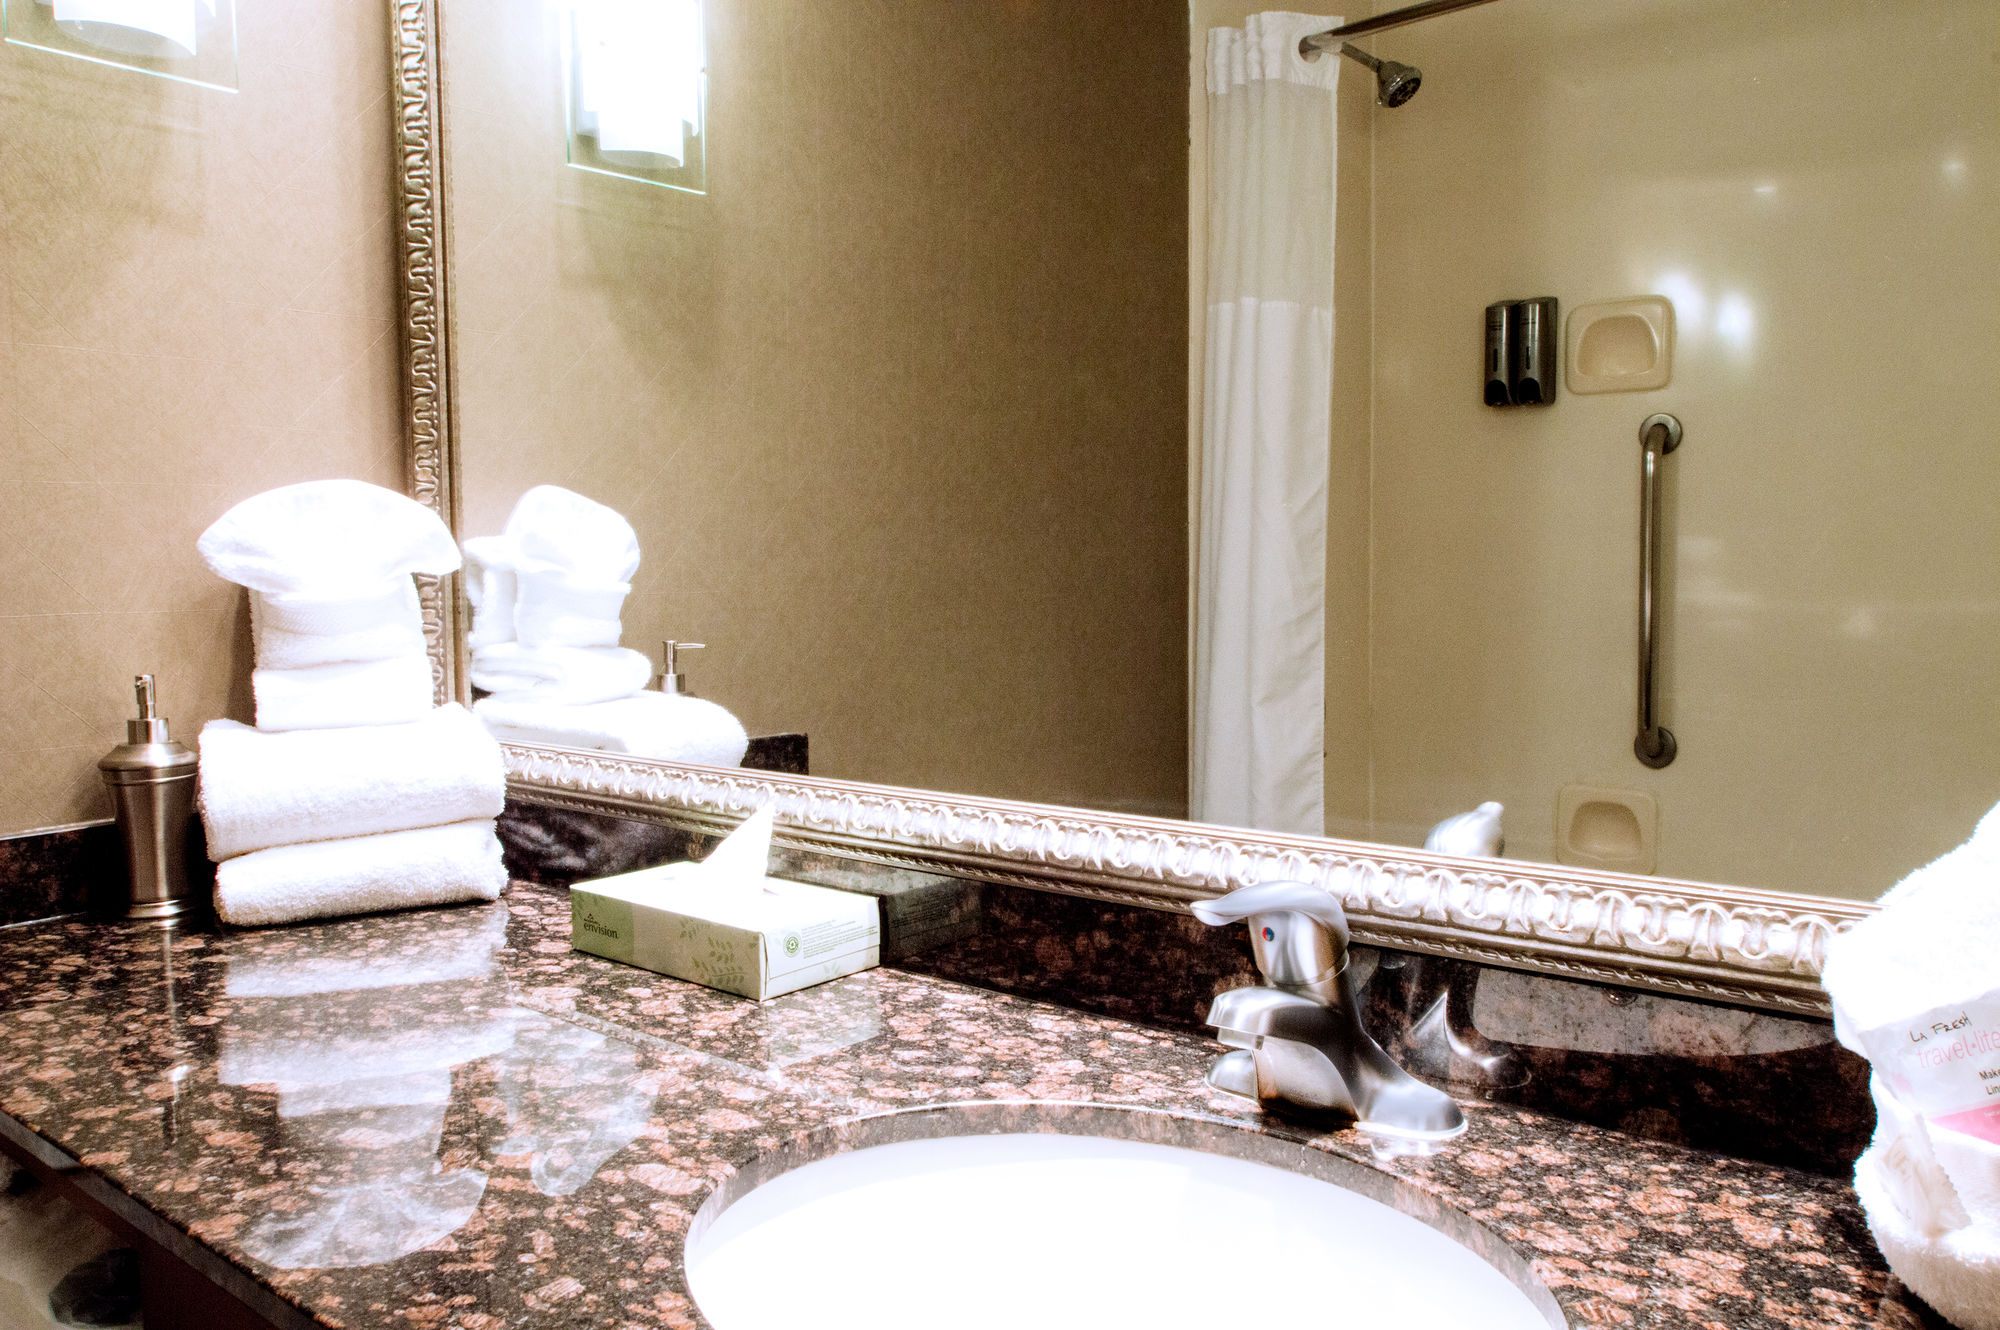 Discount Coupon For Greenstay Hotel Suites In Springfield - Bathroom fixtures springfield mo